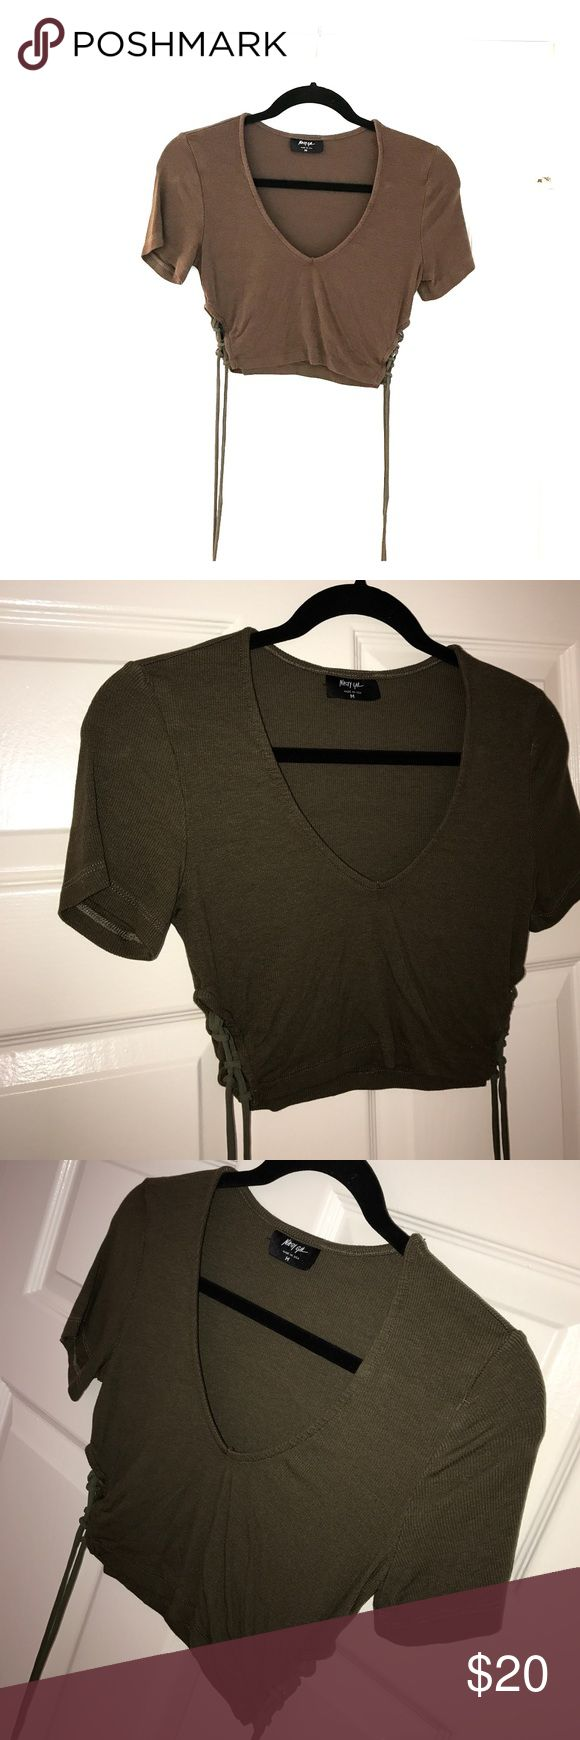 NAST GAL RIBBED OLIVE CROP TOP SIZE MEDIUM. NAST GAL RIBBED OLIVE CROP TOP SIZE MEDIUM. Side ties. No tags, never worn, perfect condition. V-neck tee Nasty Gal Tops Crop Tops